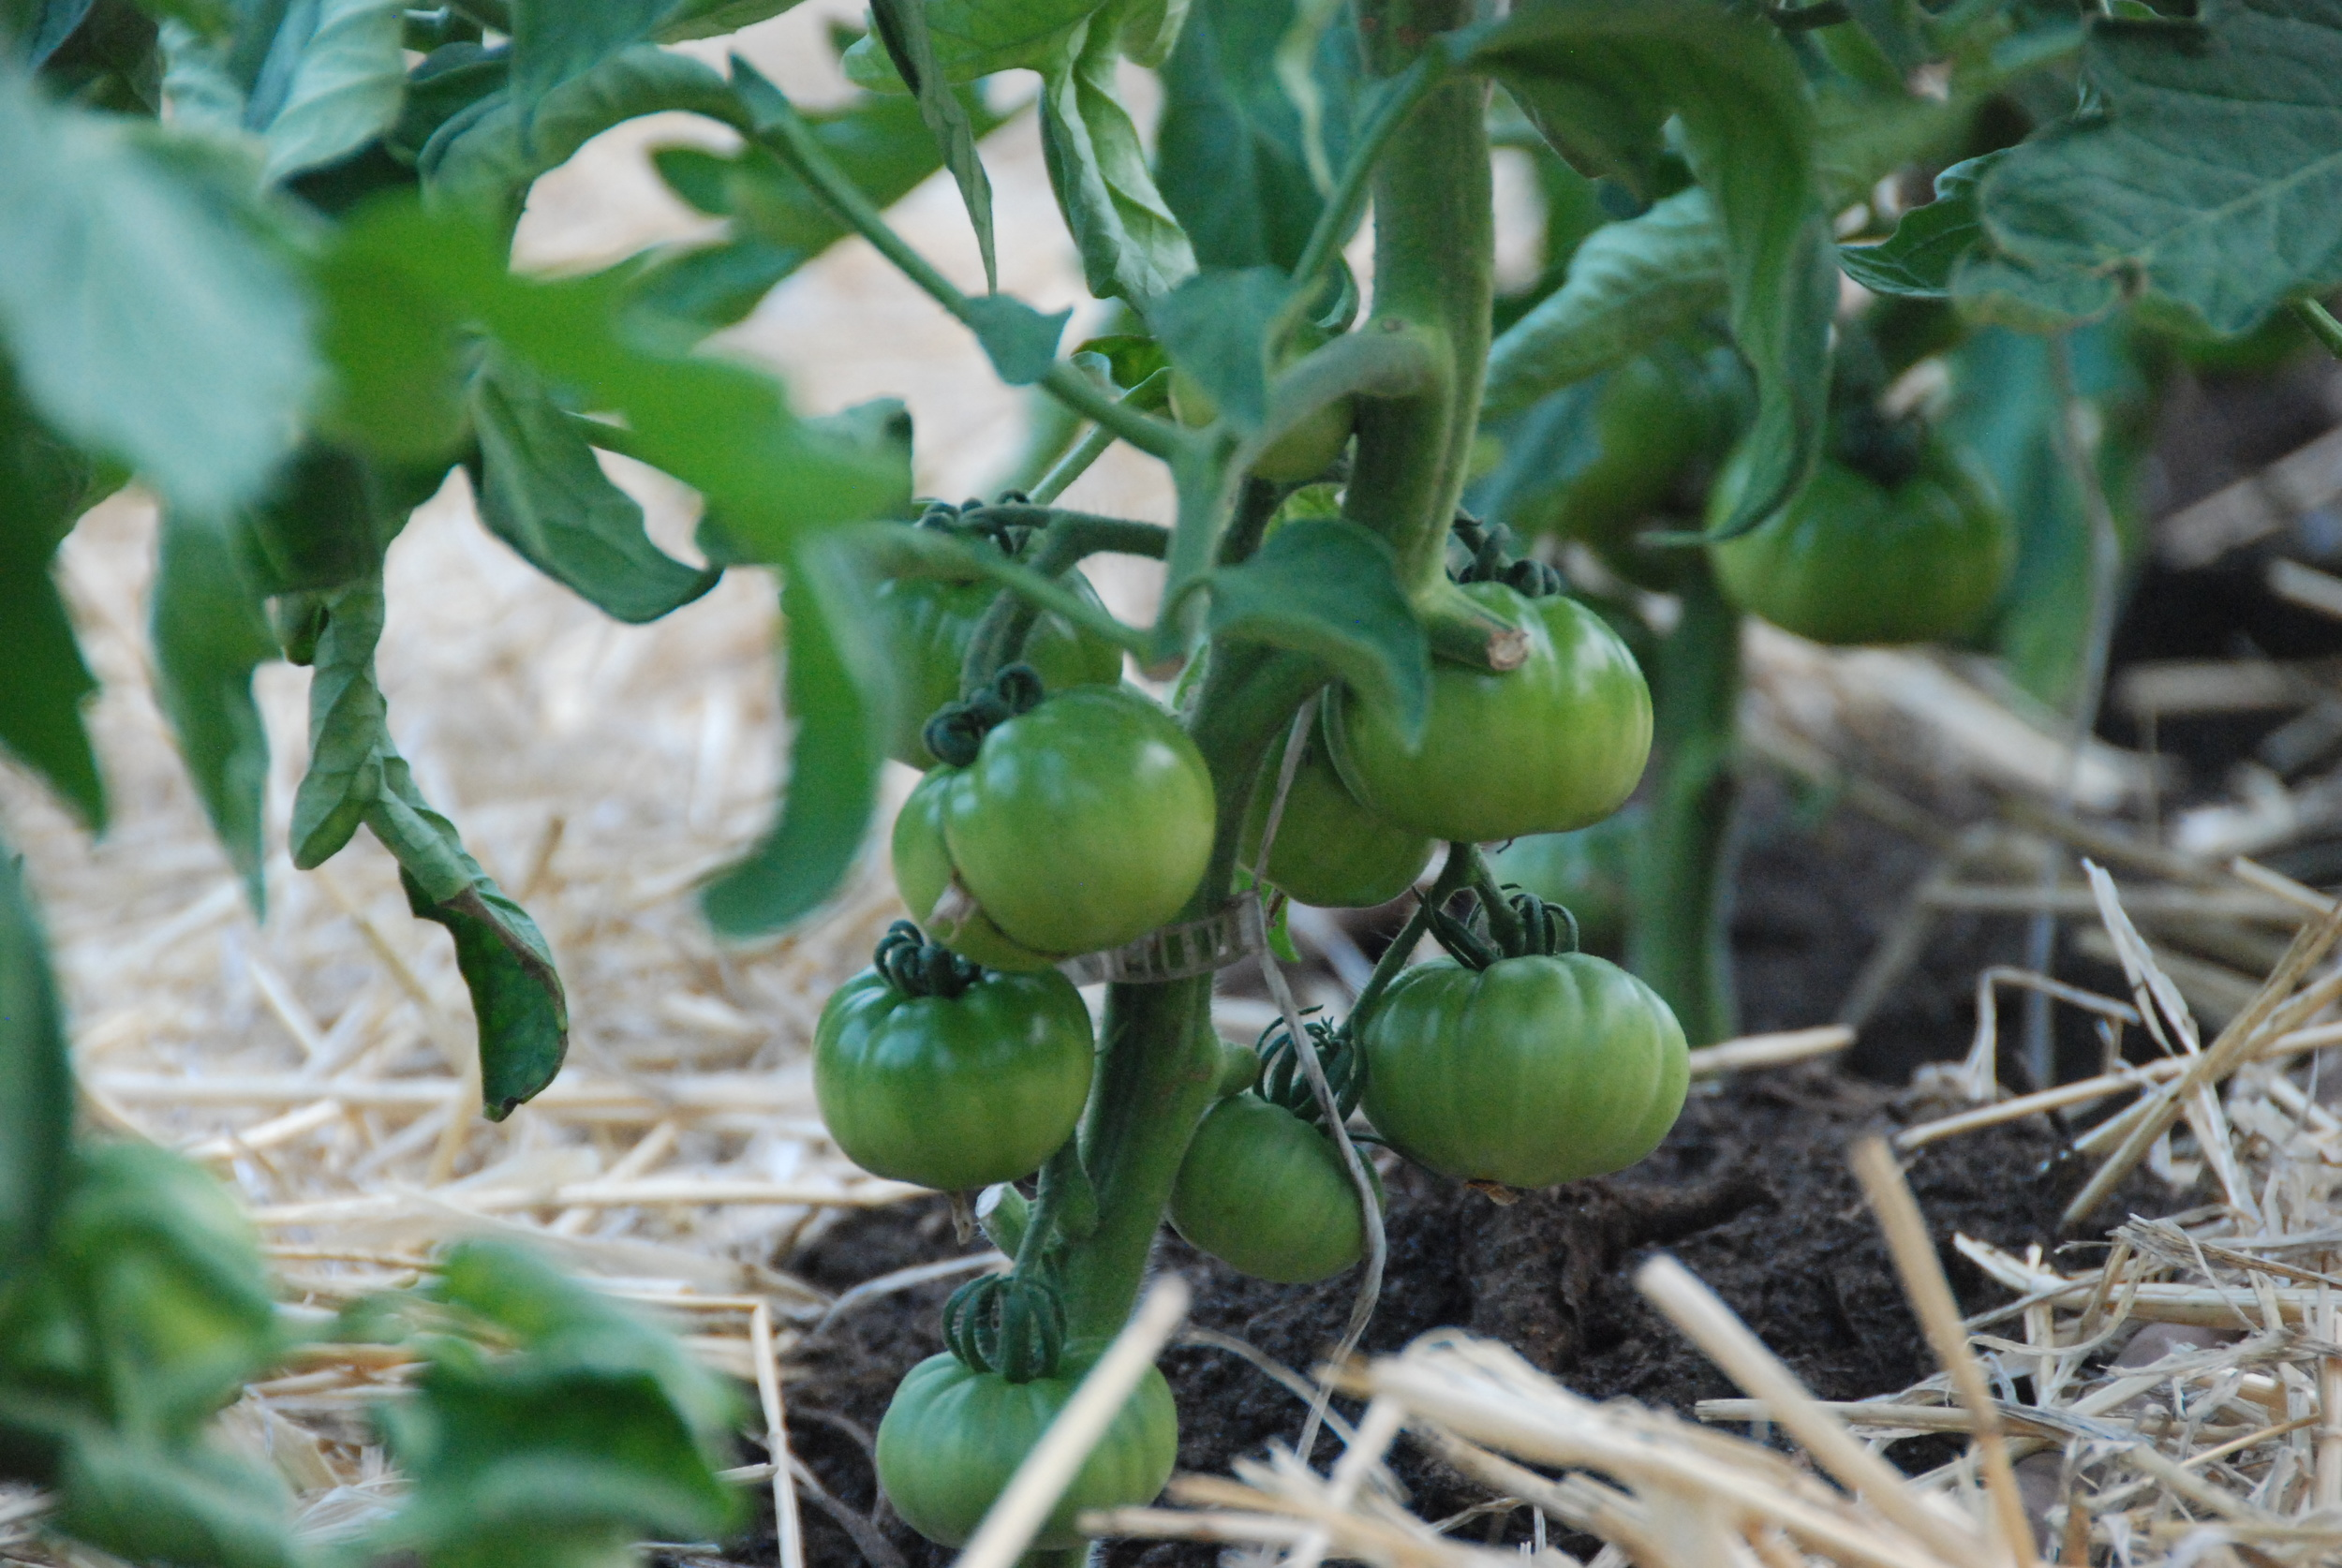 Polytunnel Tomatoes looking great!